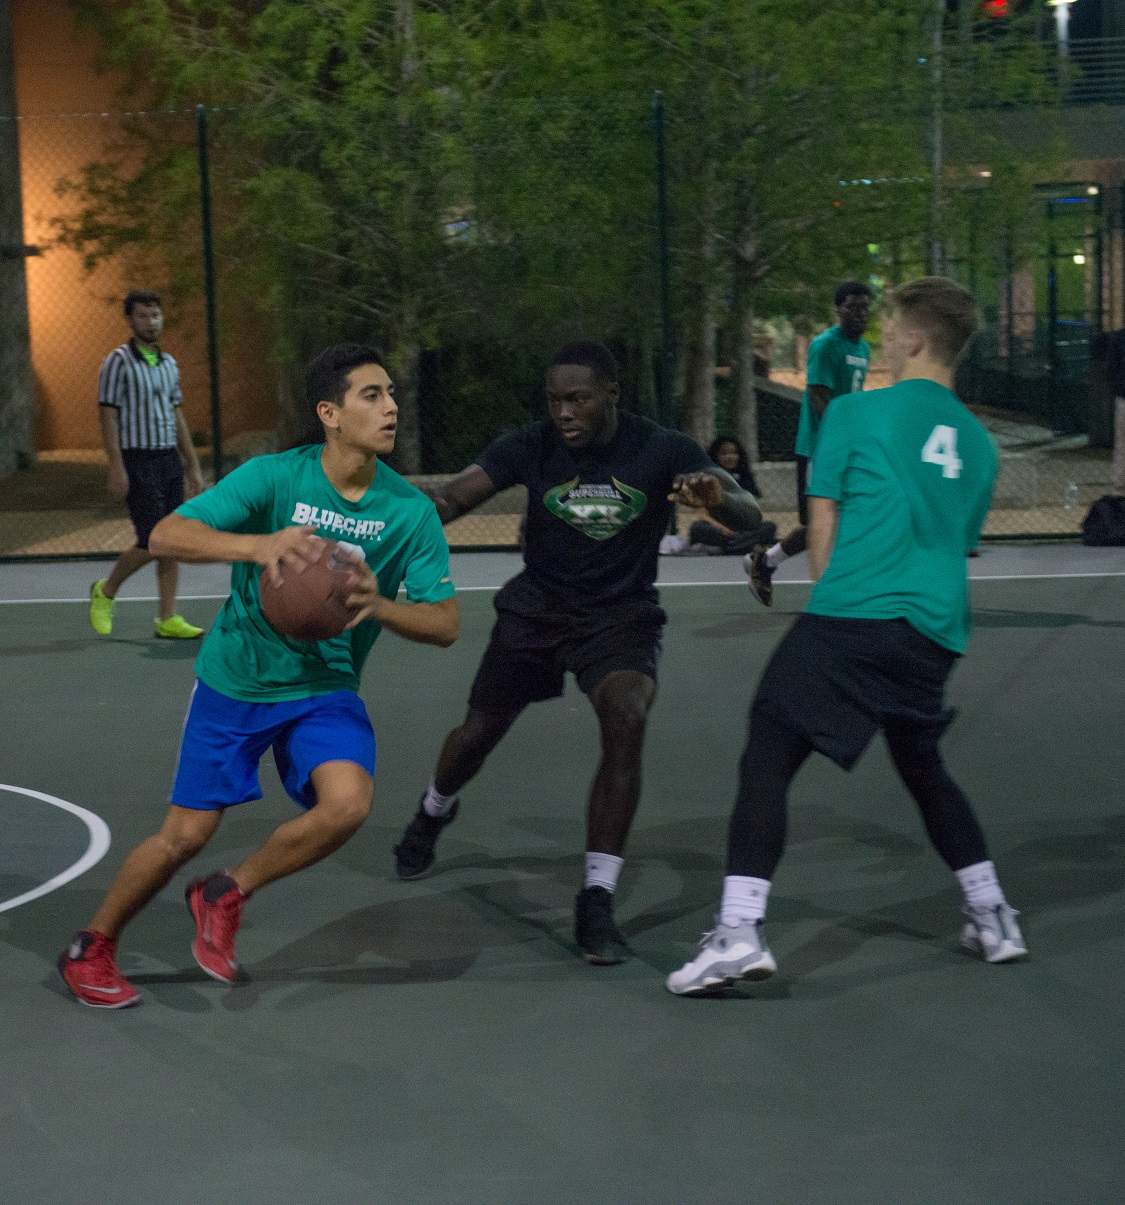 three students playing basketball